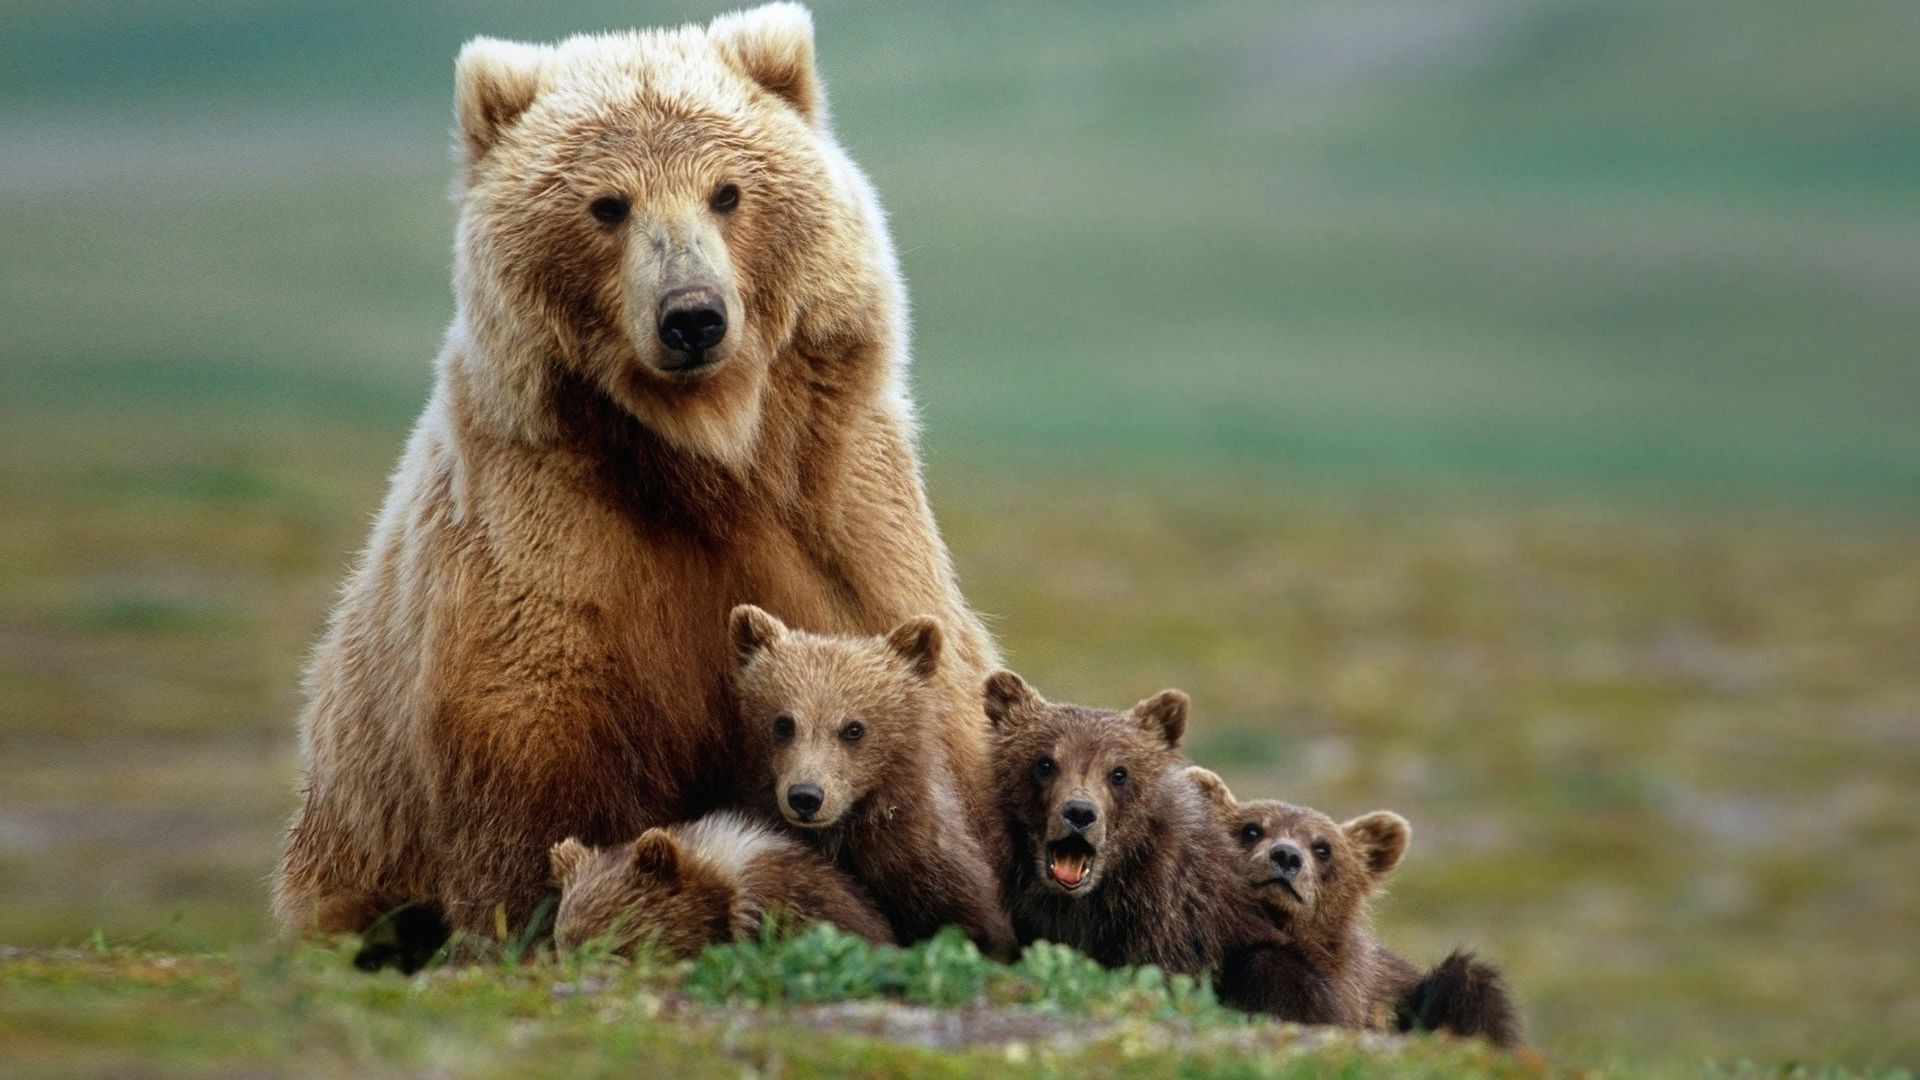 Res: 1920x1080, Animals  Full HD Wallpapers - 1080p Wallpapers | Full hd bear  family photo, wallpaper